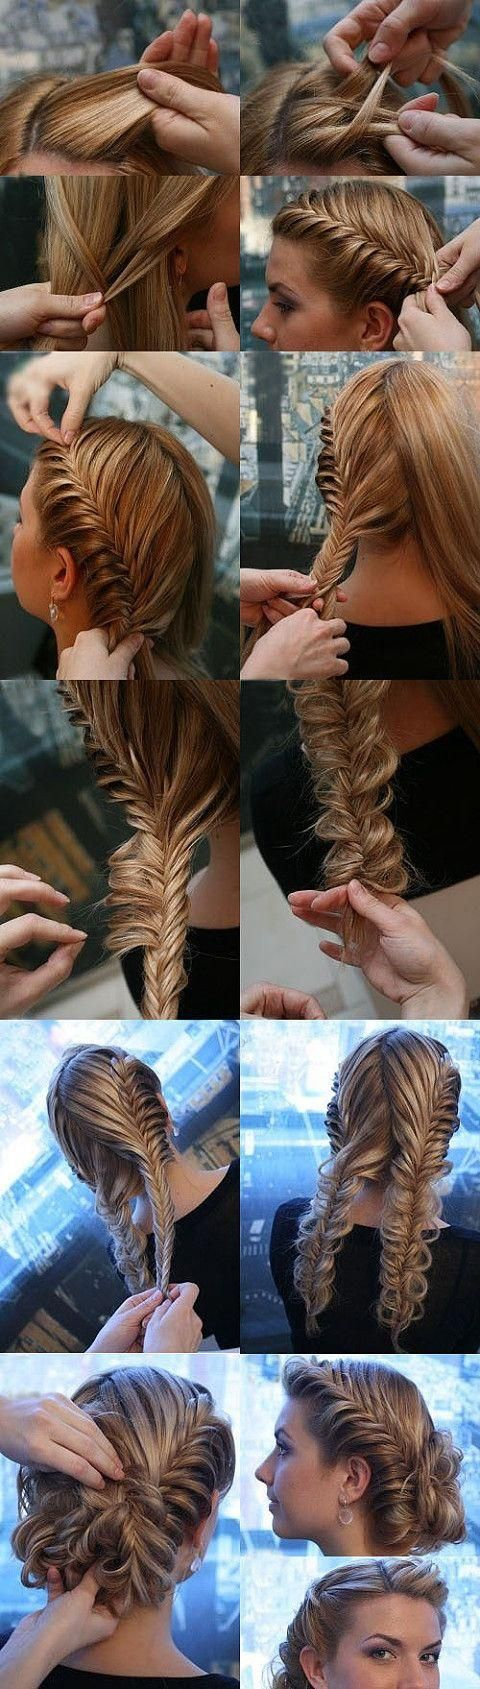 Fishtail Braided Updo - Hairstyles How To